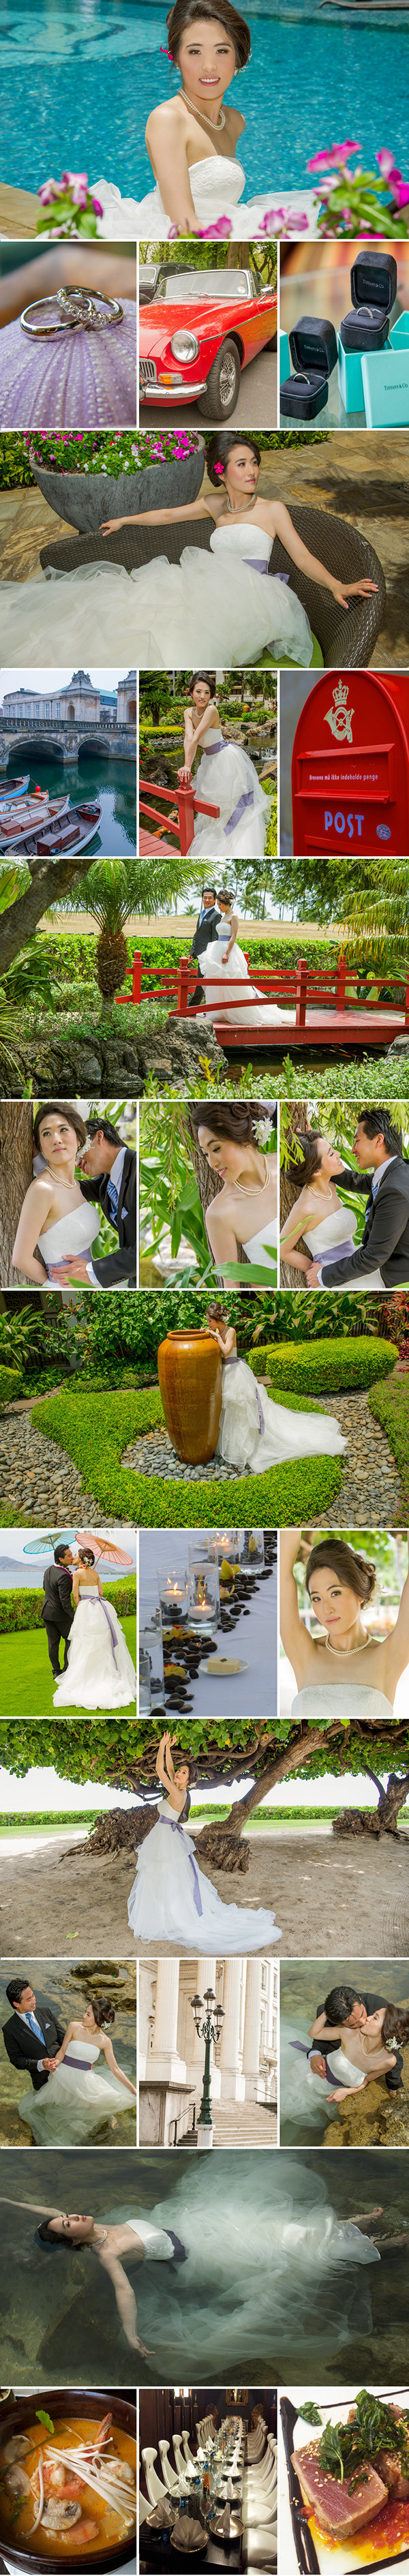 Maui wedding photographers | Oahu wedding photographers | Kauai wedding photographers | Big Island Wedding Photographers.